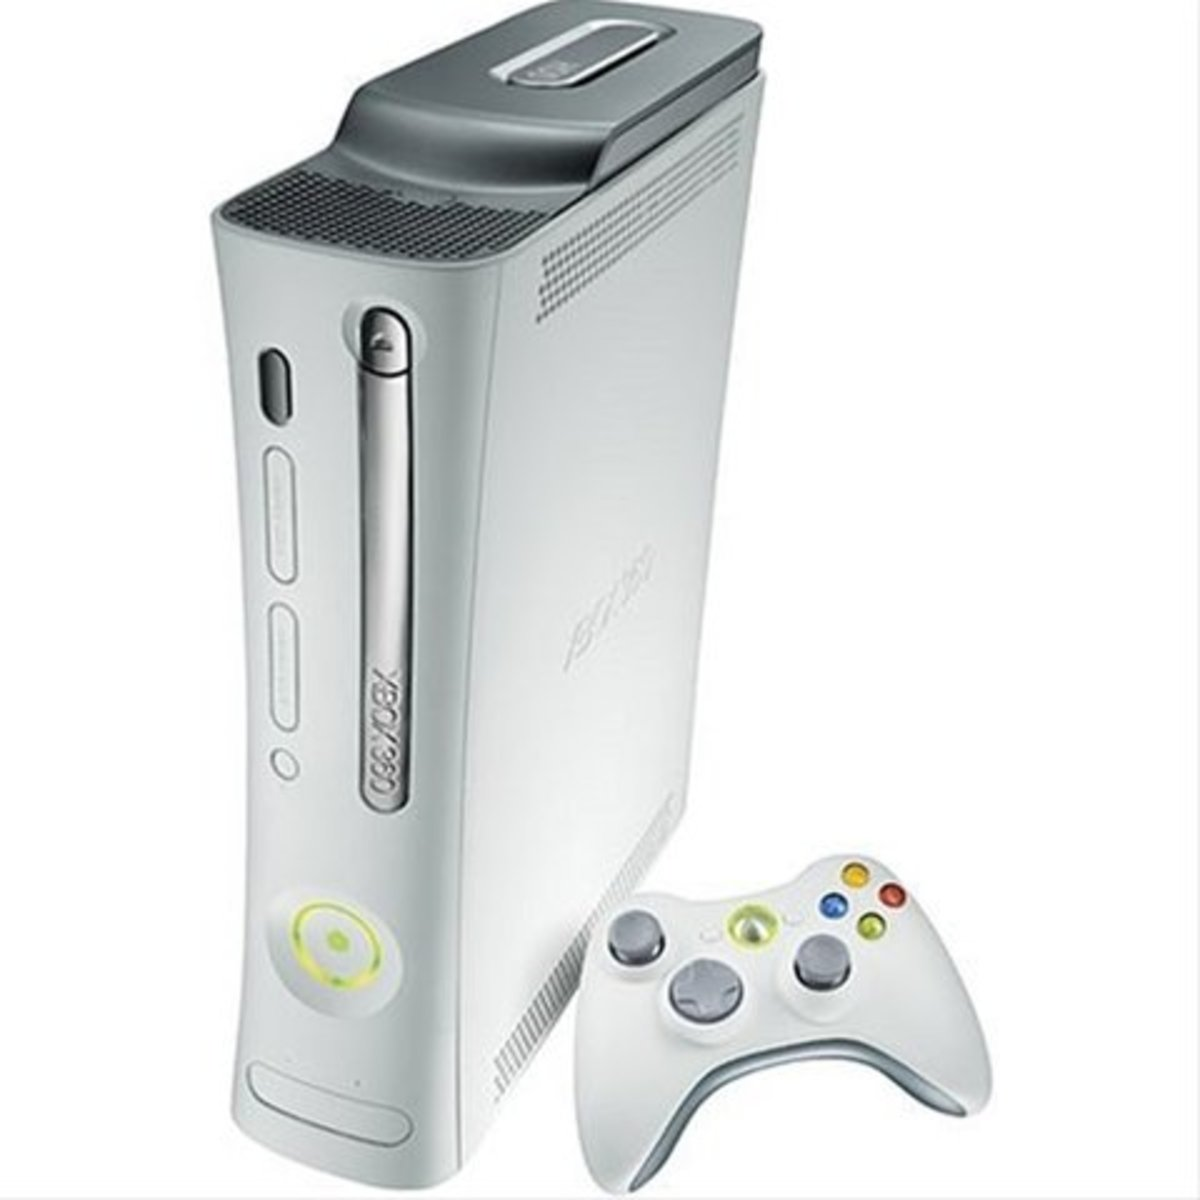 Updating your xbox 360 console